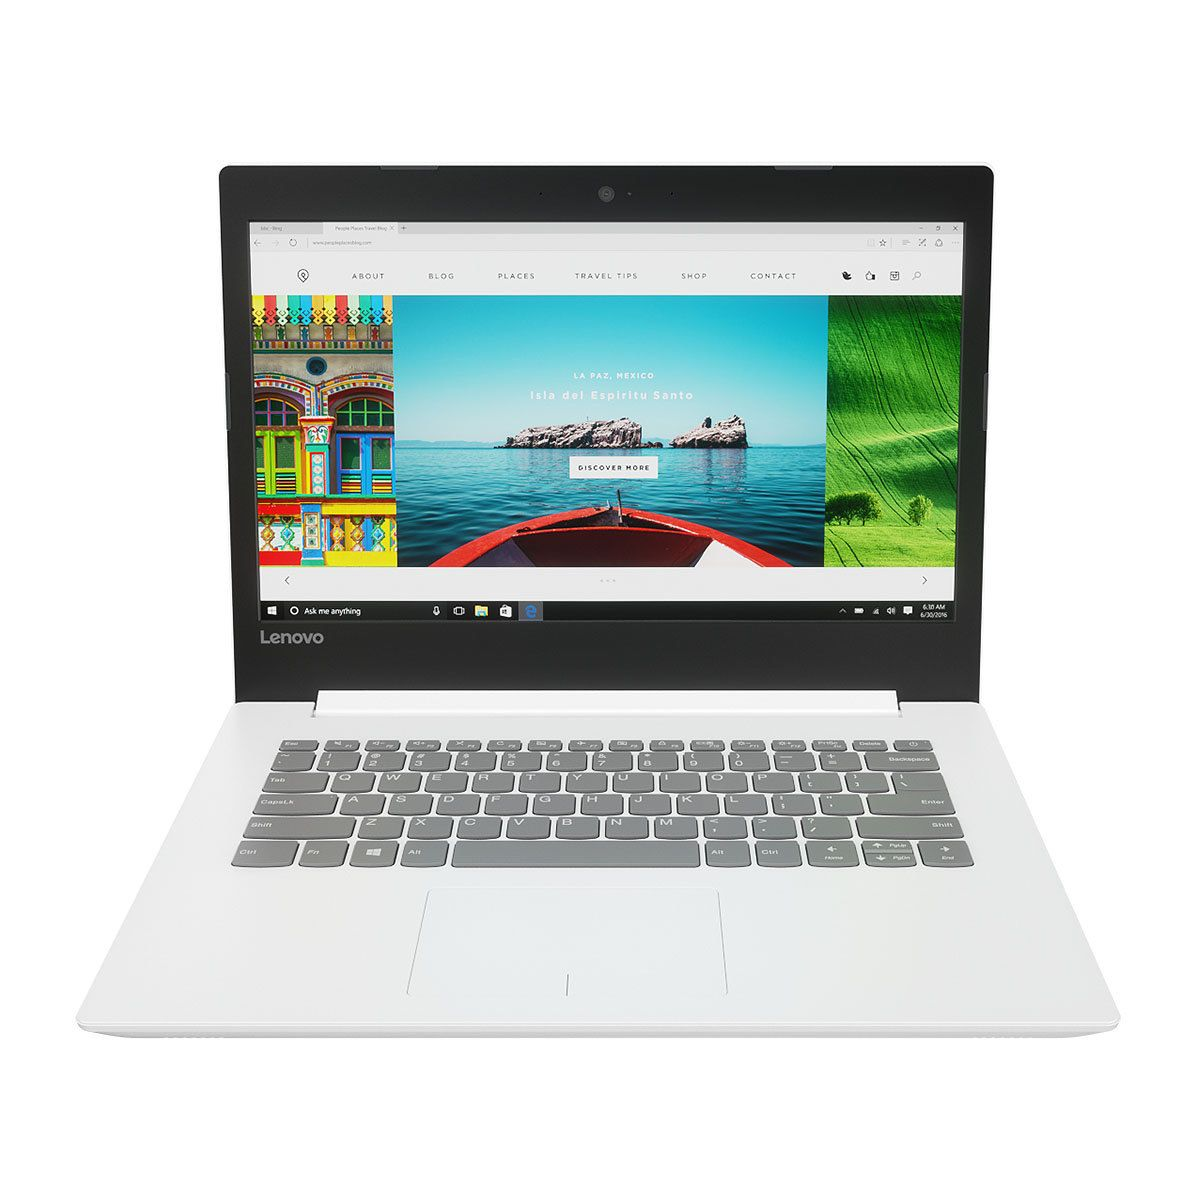 Notebook Intel Core i3 4GB 500GB Windows 10 Tela 14 Ideapad 320 80YF0008BR Branco - Lenovo